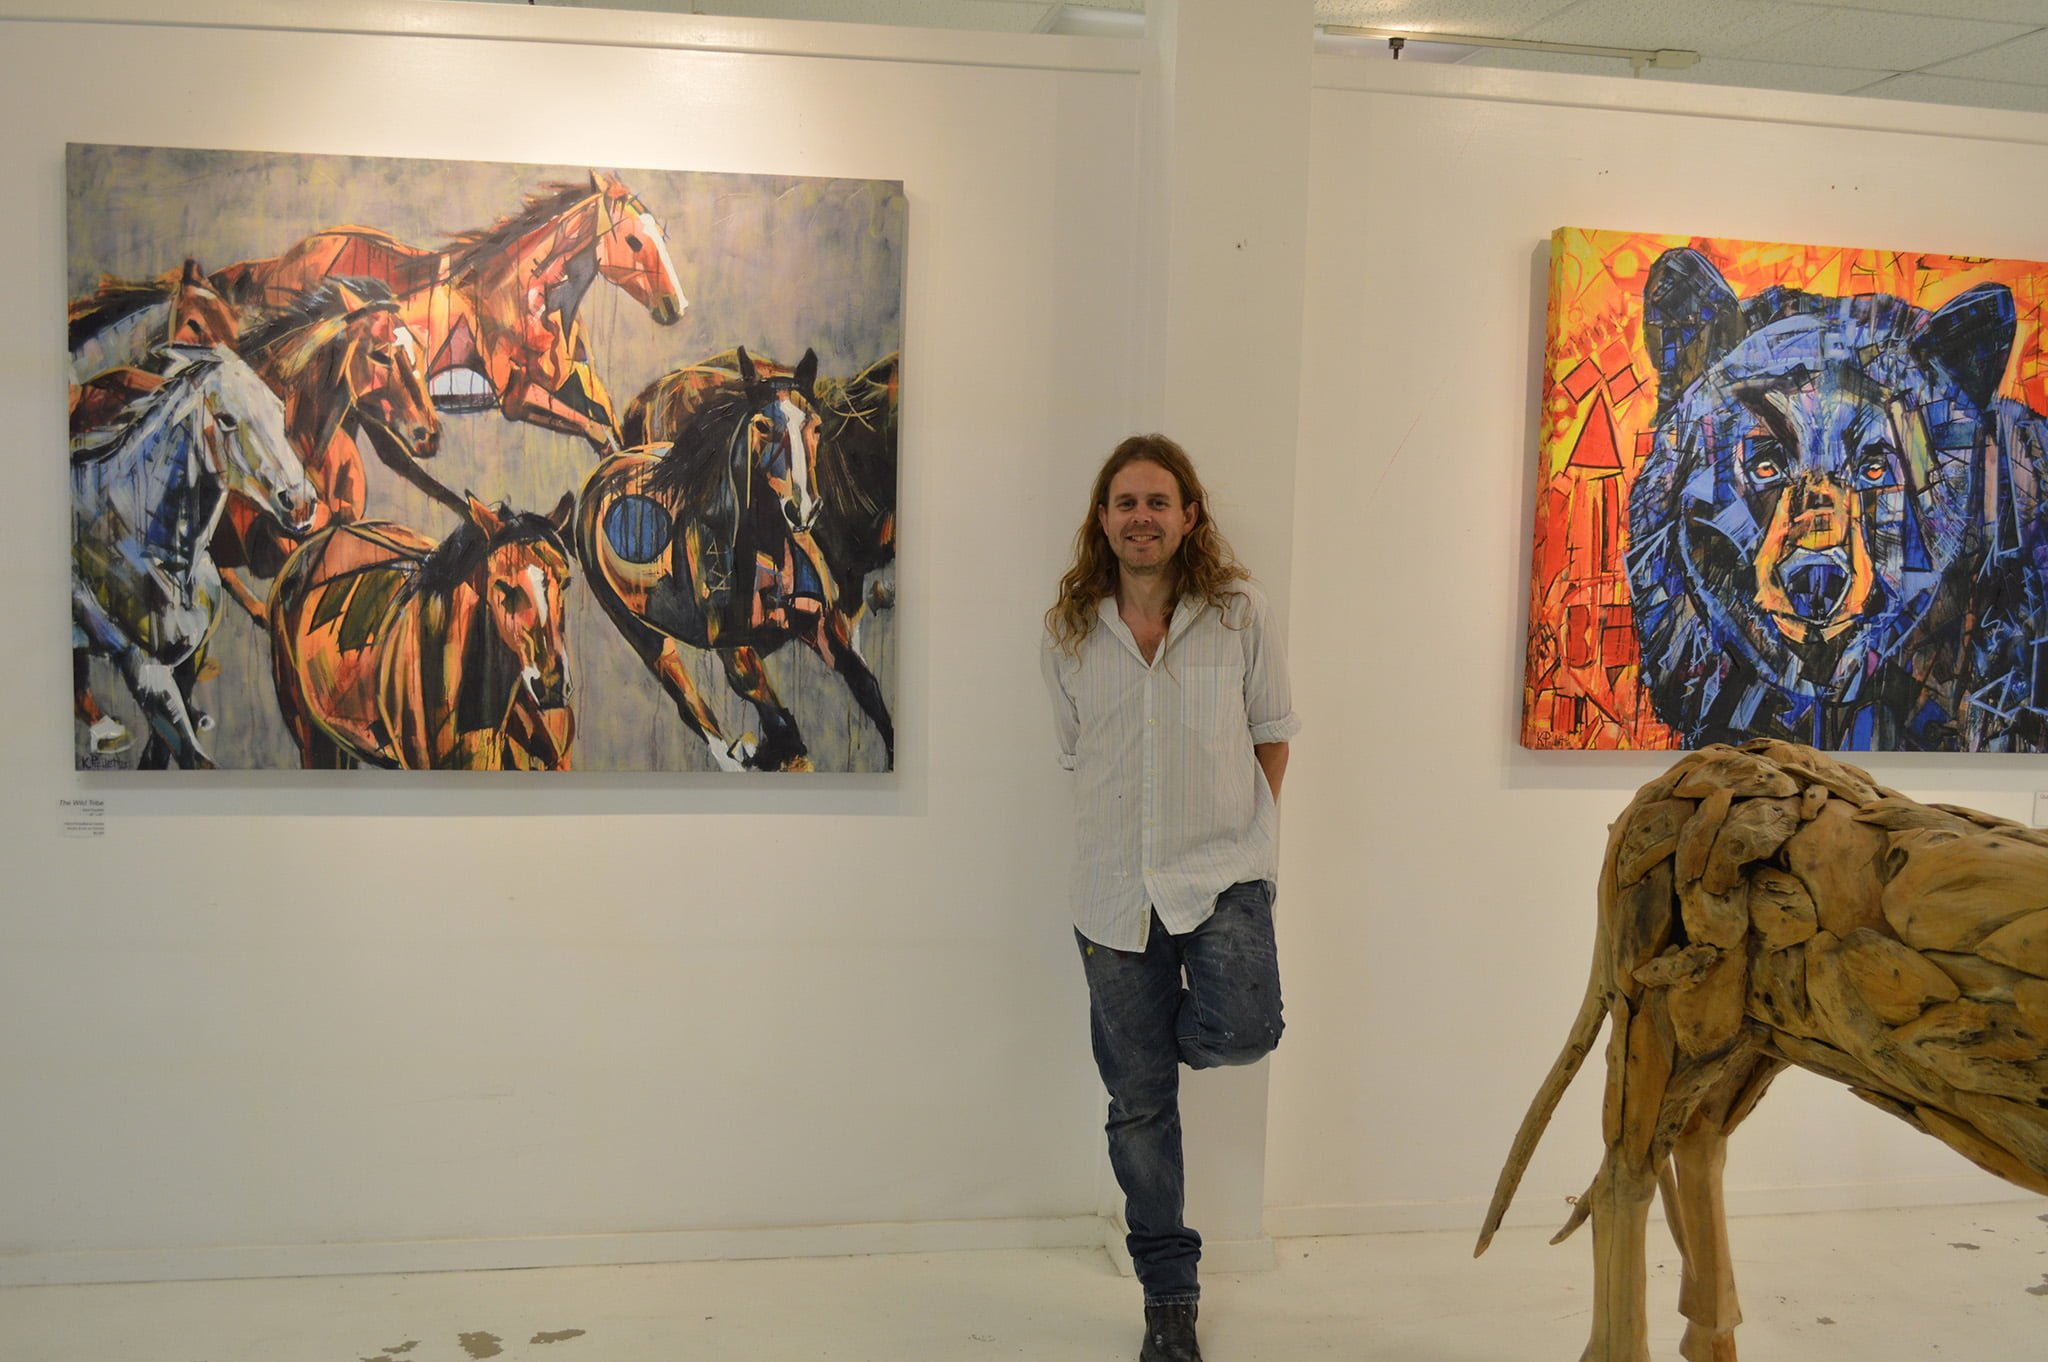 Kent Paulette Art Gallery in Banner Elk, NC. The artist K. Paulette is smiling and standing in front of his painting 'The Wild Tribe' of a stampede of horses. On his other side is his black bear painting 'Quantum Entanglement'. The walls are white. The artist wears jeans and a white shirt. He has long hair.